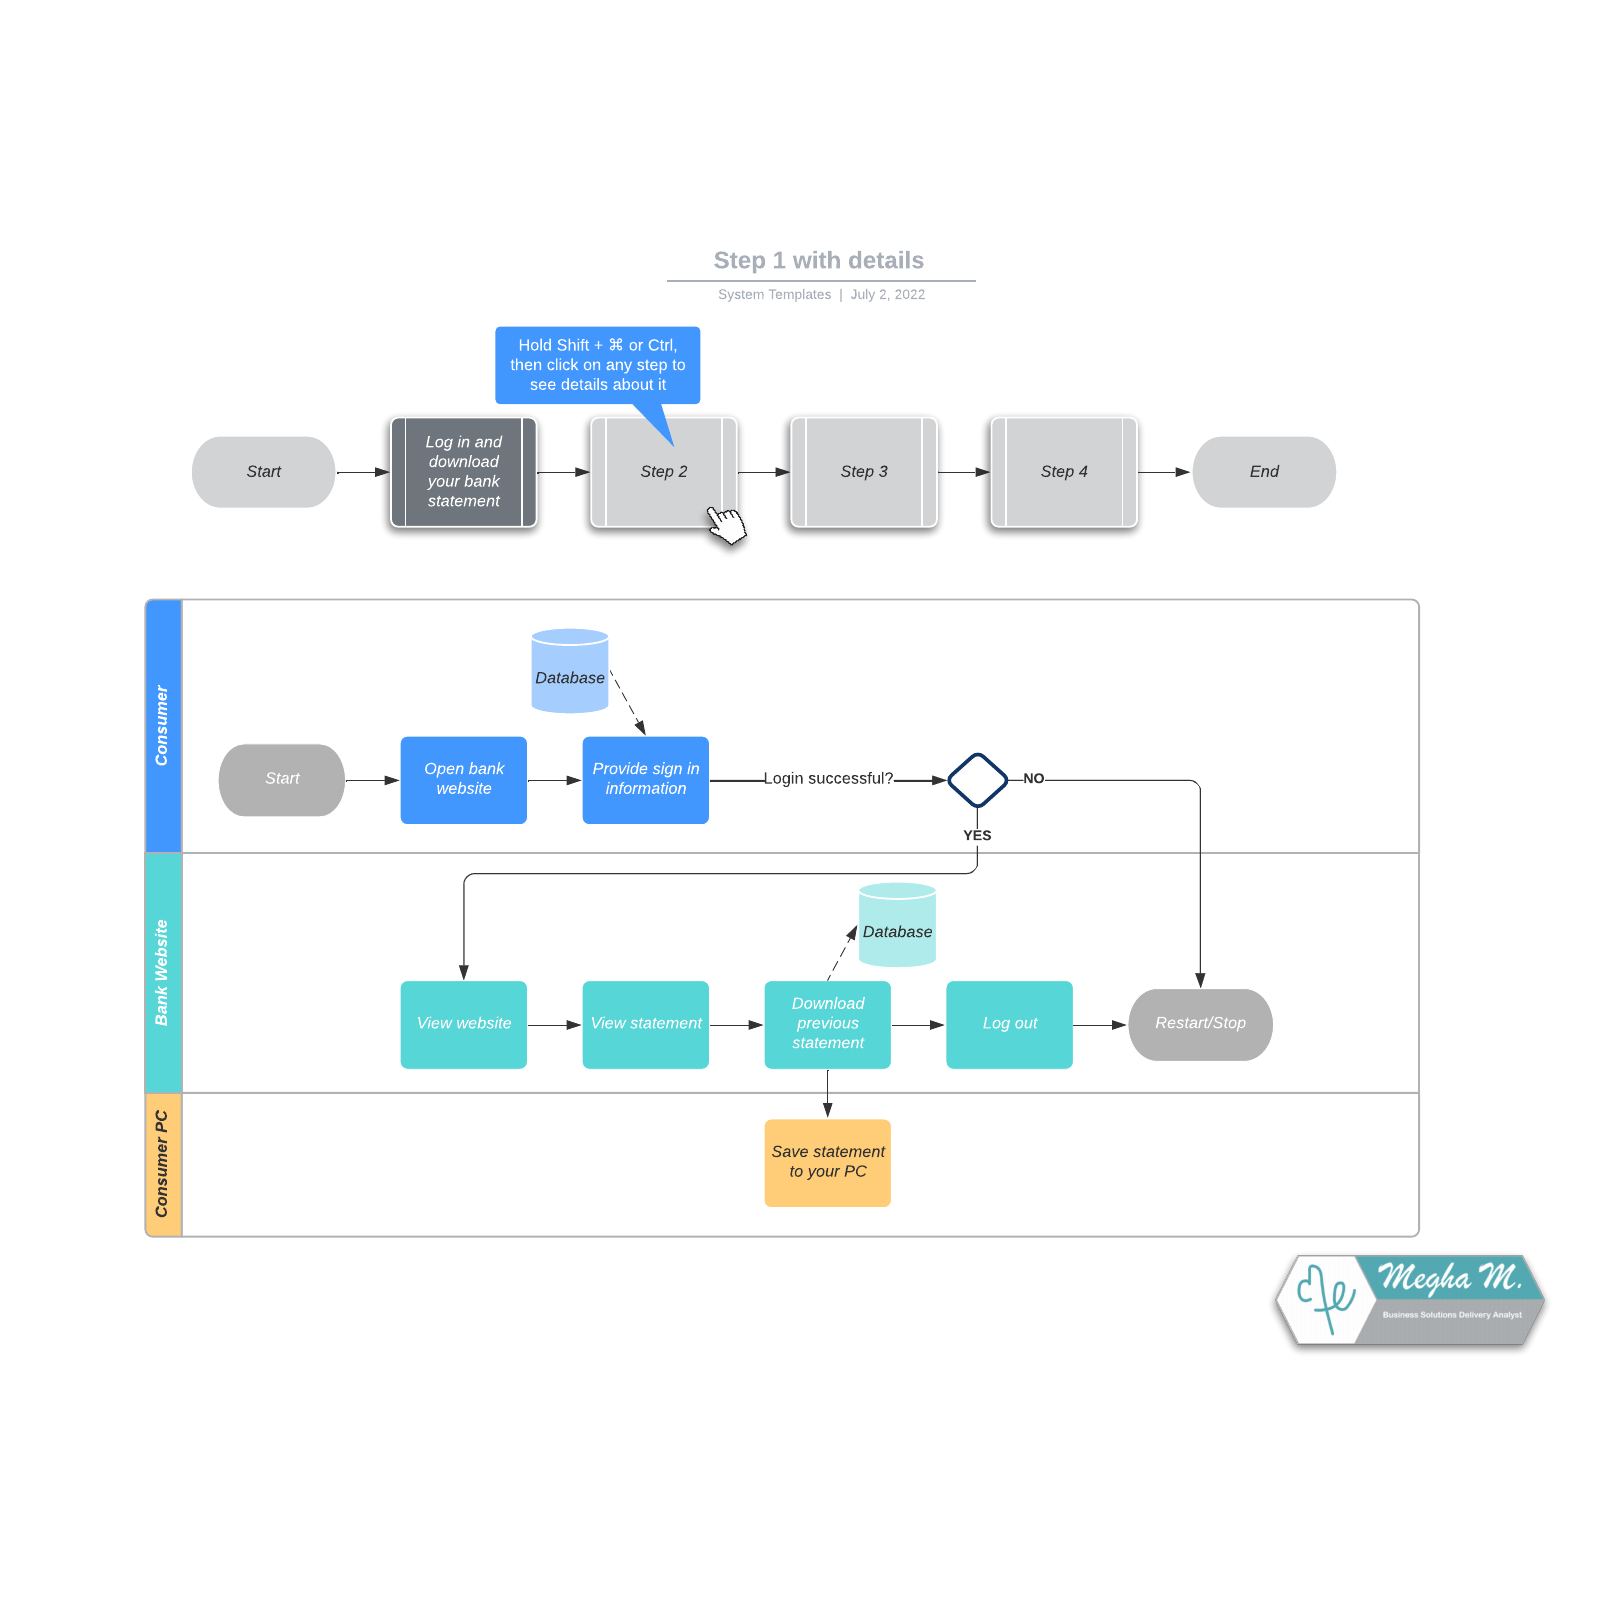 Overview flowchart with details example